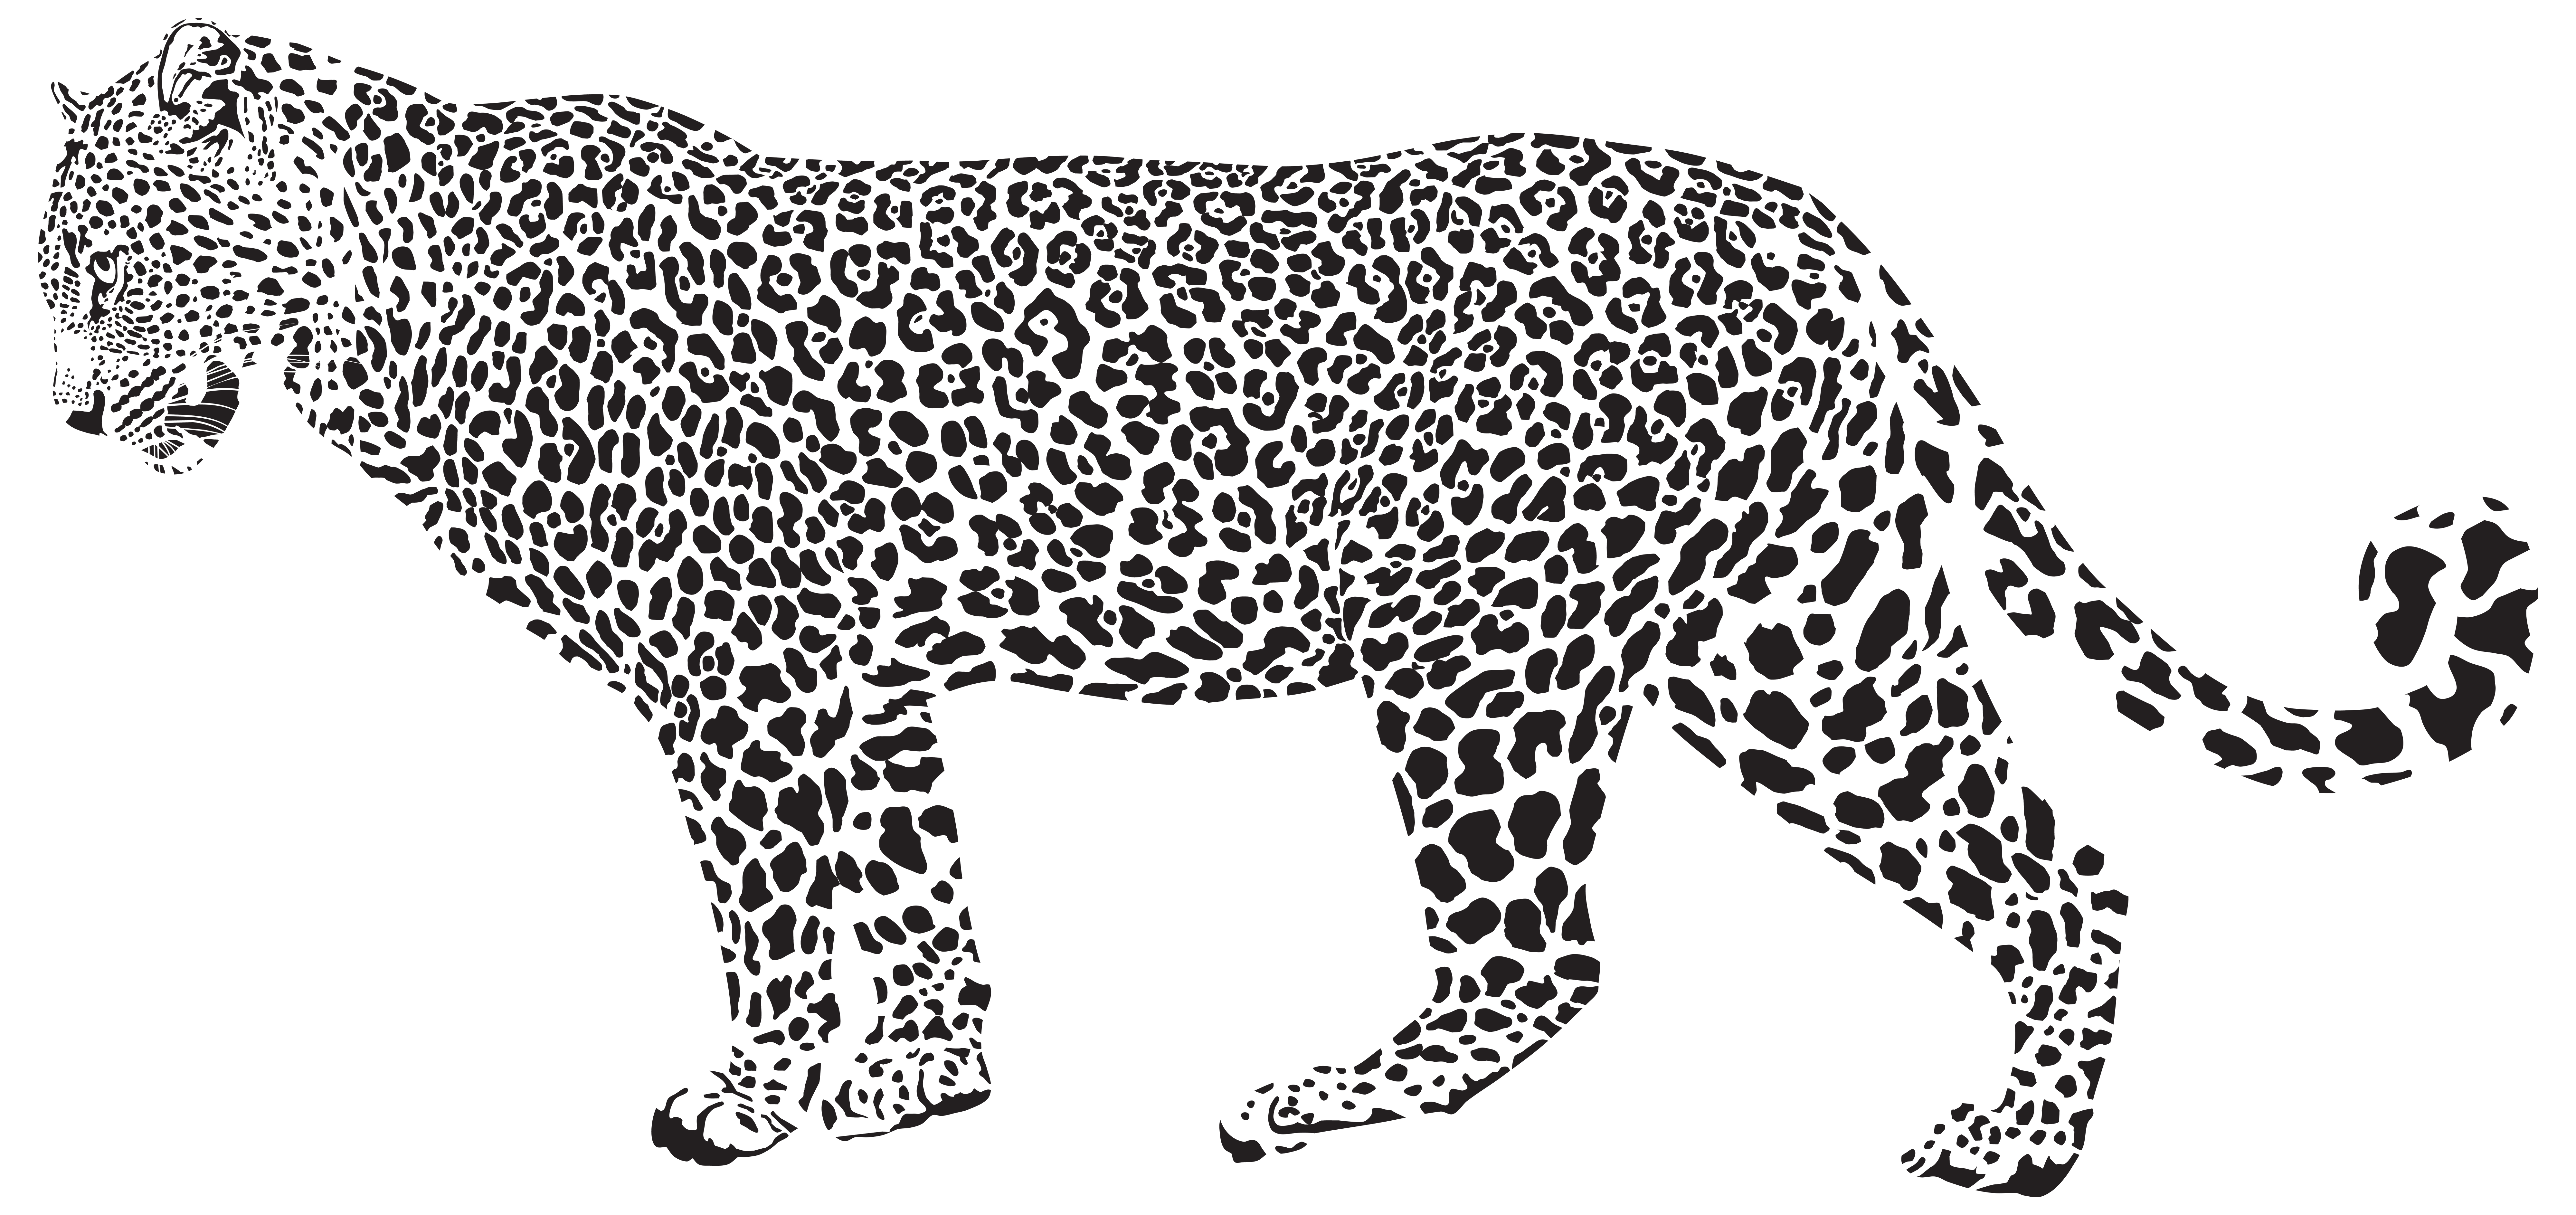 Jaguar Silhouette Png Transparent Clip Art Image Gallery Yopriceville High Quality Images And Transparent Png Free Silhouette Png Sun Clip Art Art Images